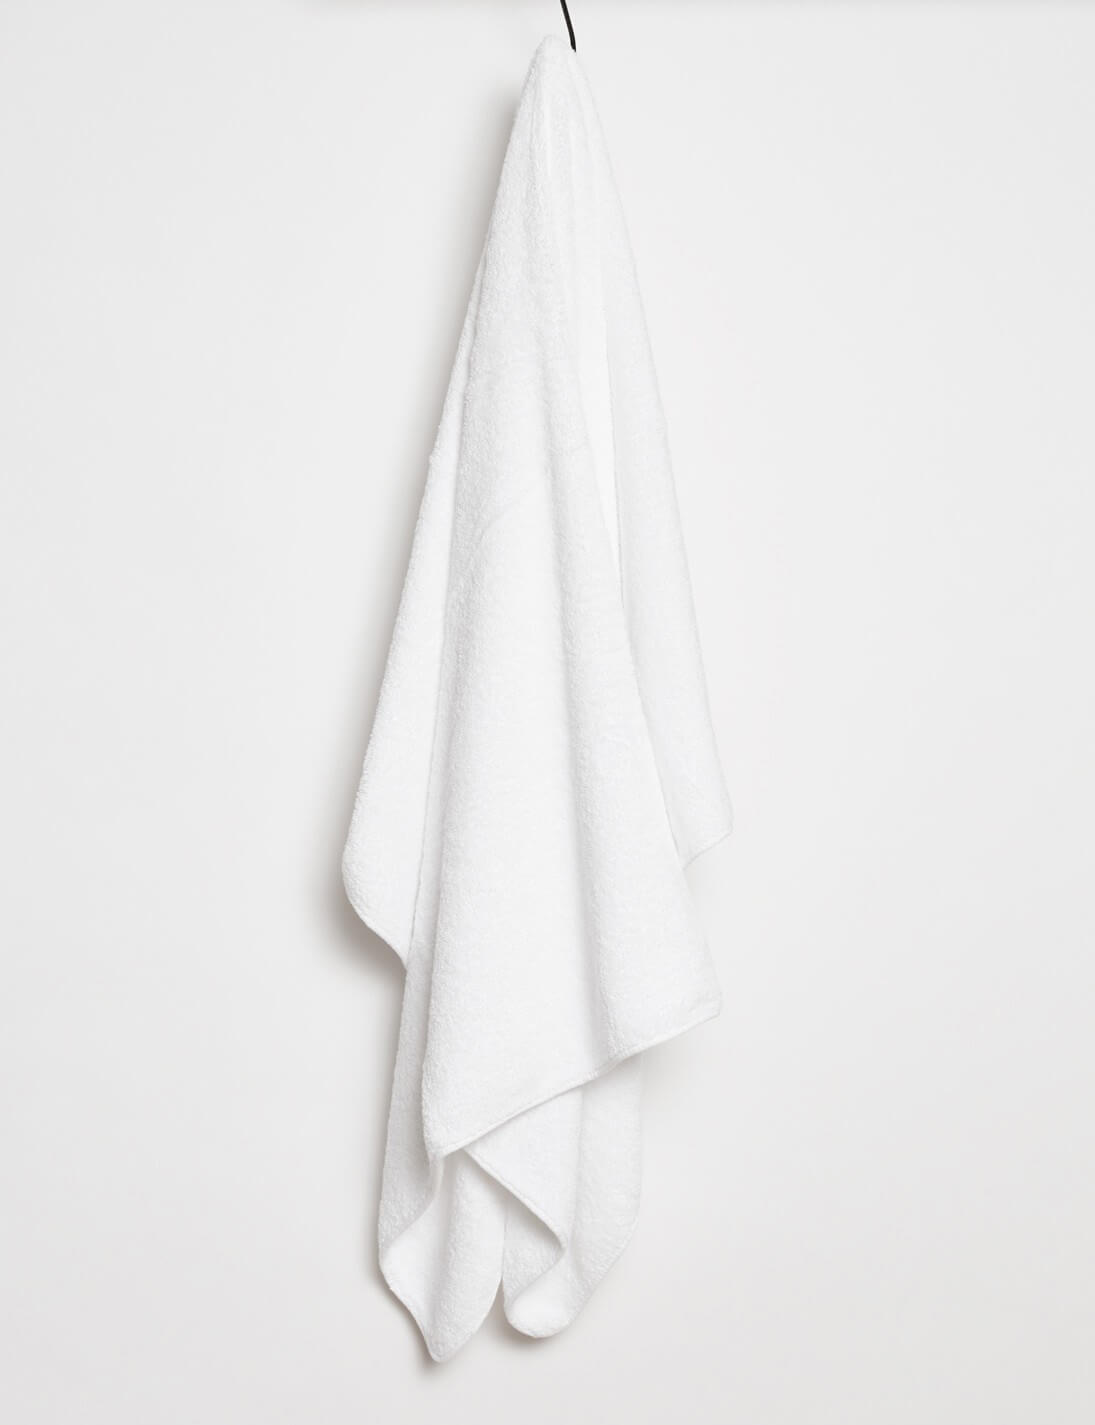 Primo Towel 700 | Abode Living